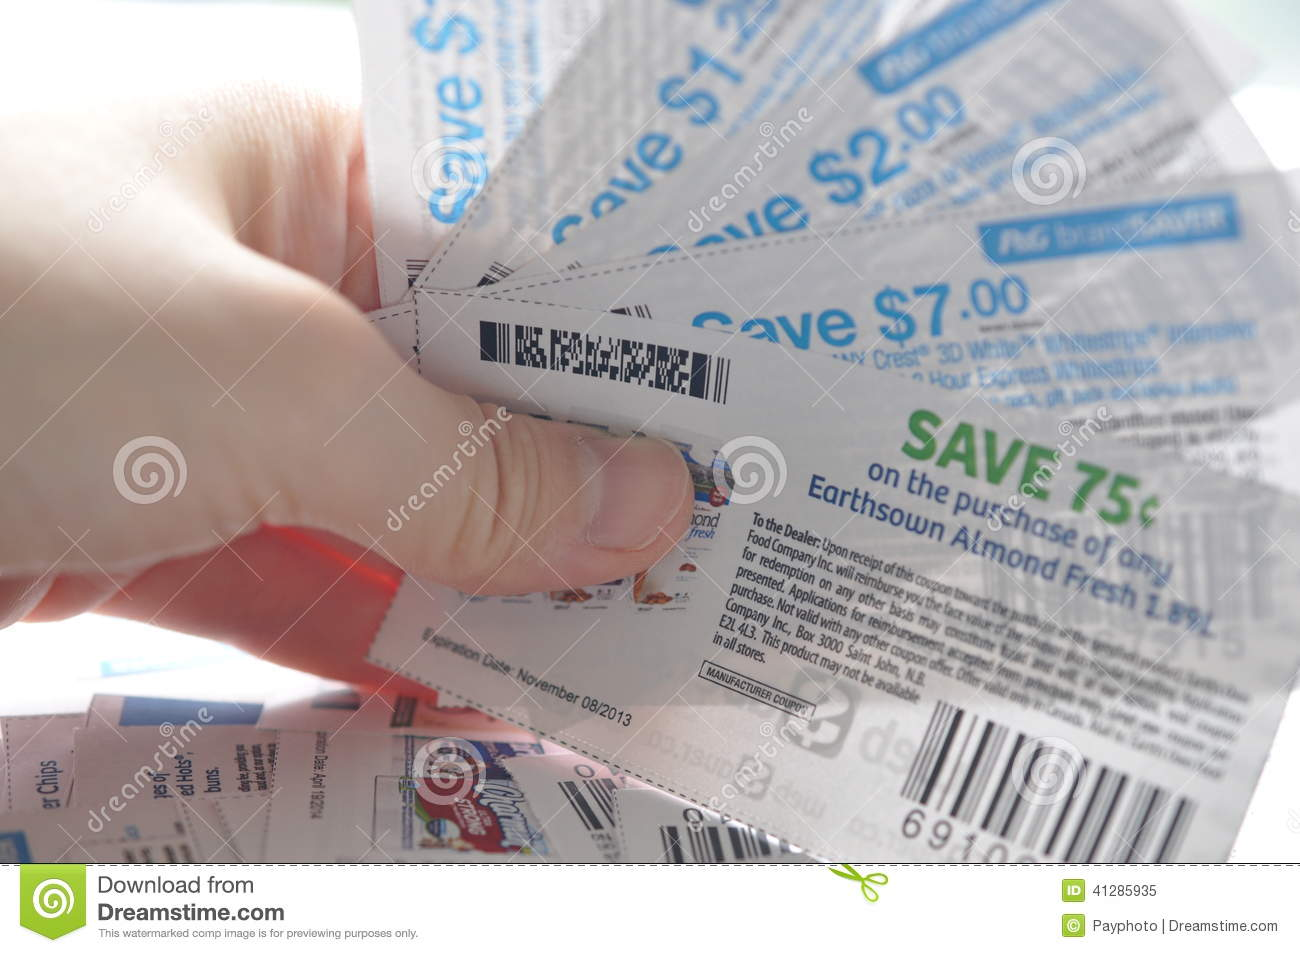 Save money using the best available online local coupons for home repair, restaurants, automotive, entertainment and grocery shopping.